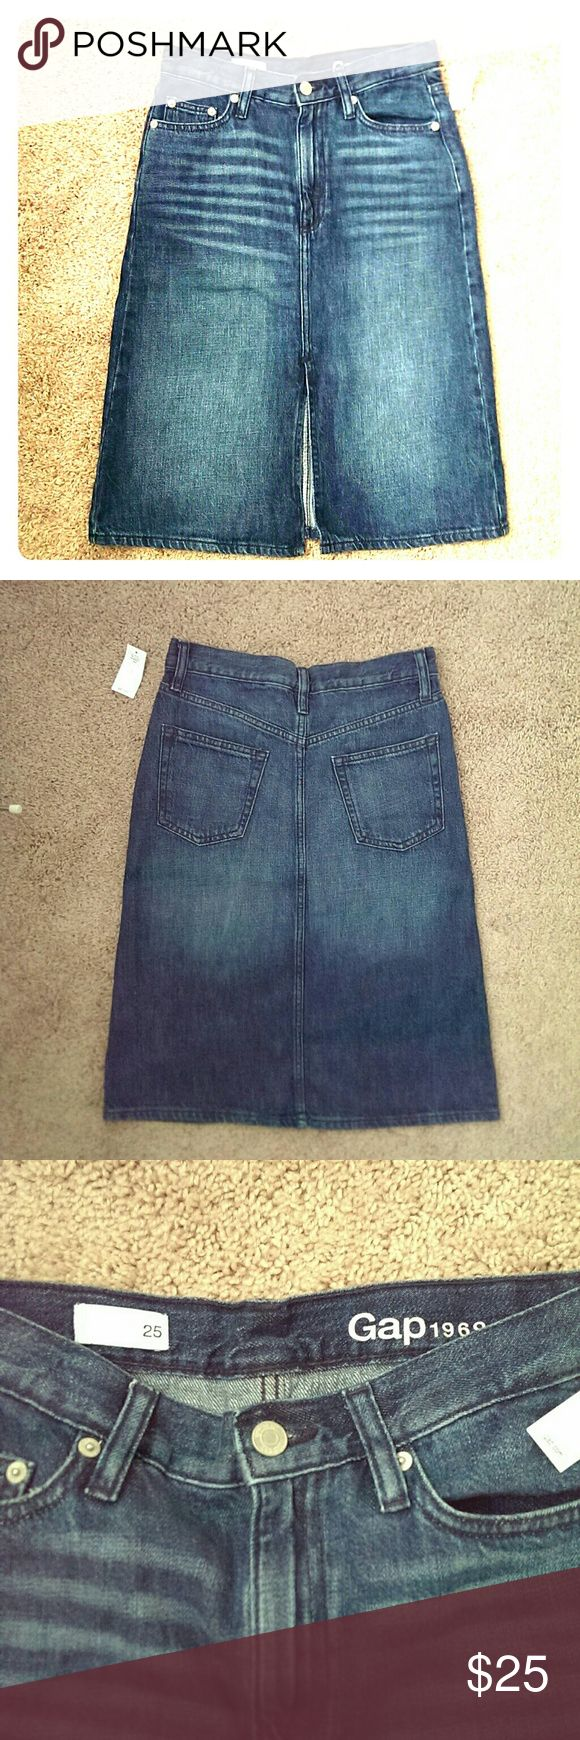 Gap Jean Skirt High Waist Brand new high waist Gap skirt with a front slit. Size 25. GAP Skirts